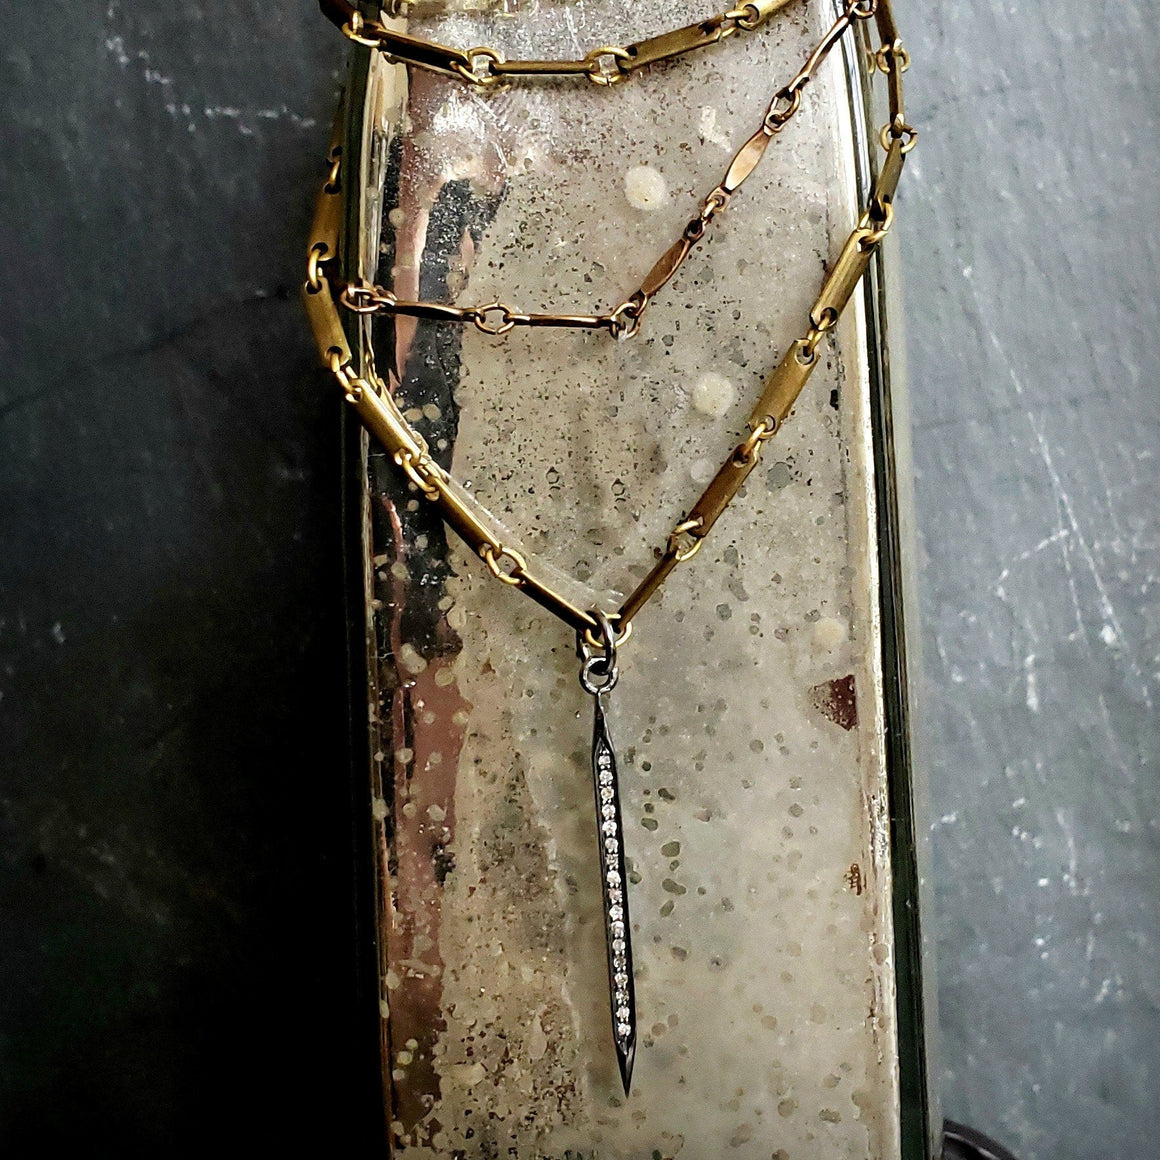 Edgy Wrap Around Brass Chain PAVE DIAMOND Spike Necklace - ViaLove Designs